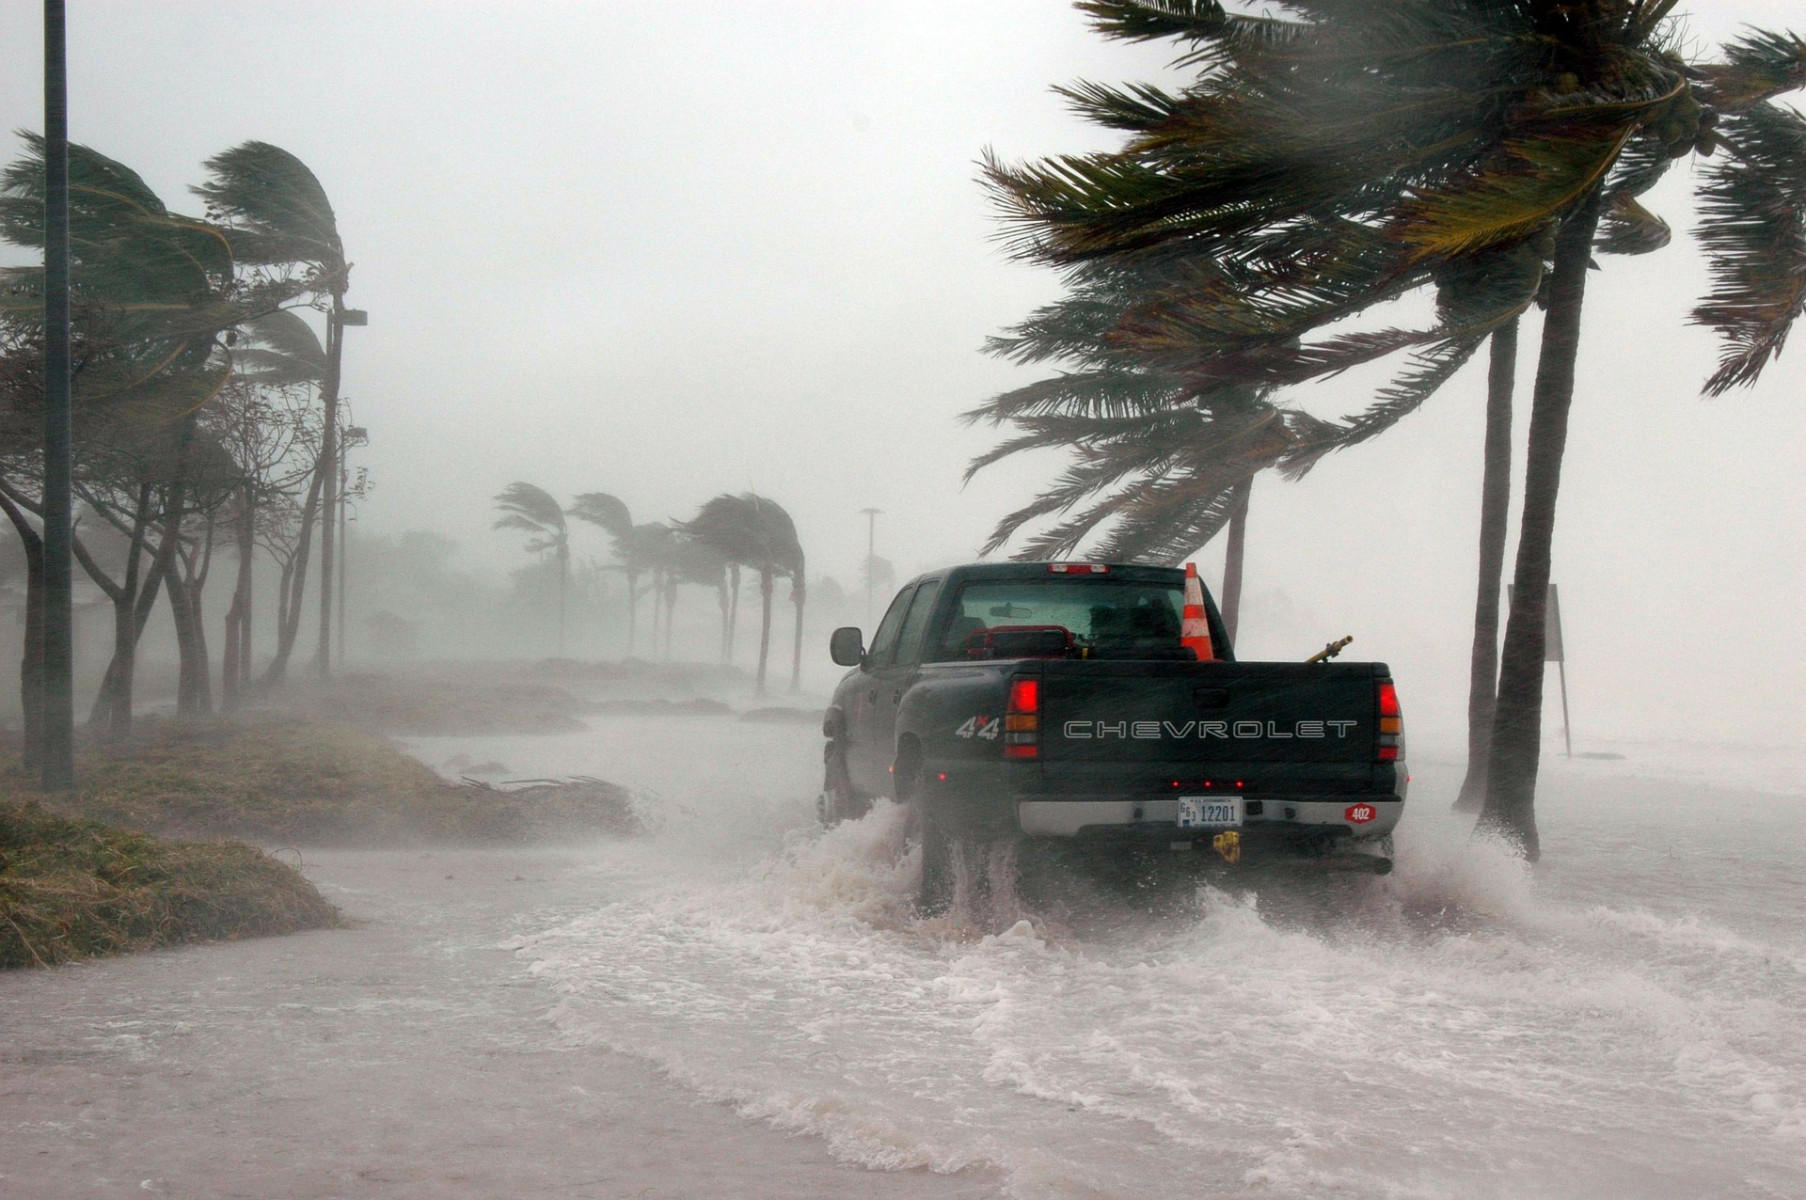 A storm blowing palm trees and a car goes through harsh rain and floods